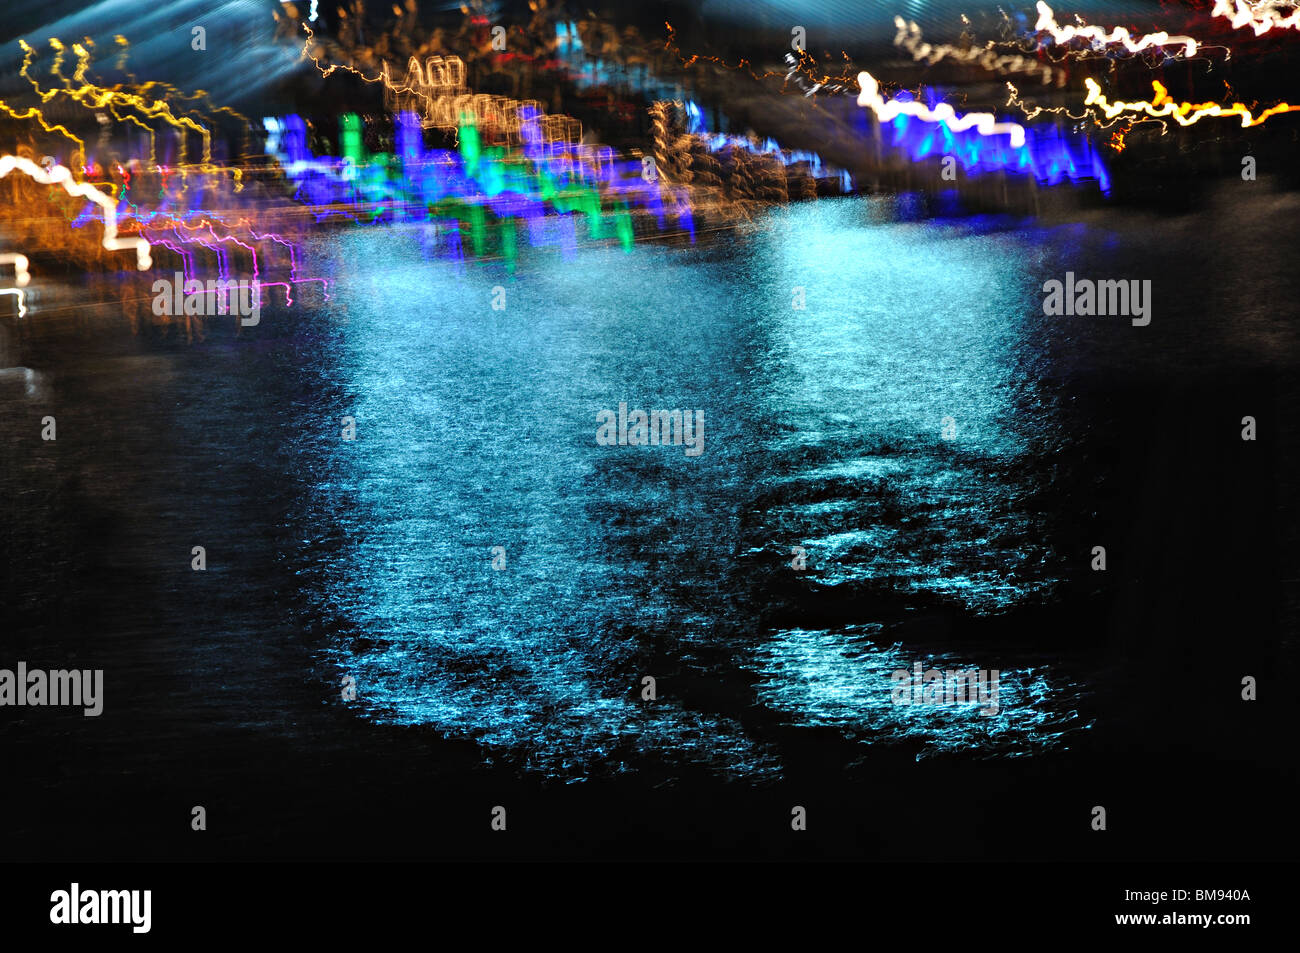 Reflections of neon light on water - Stock Image